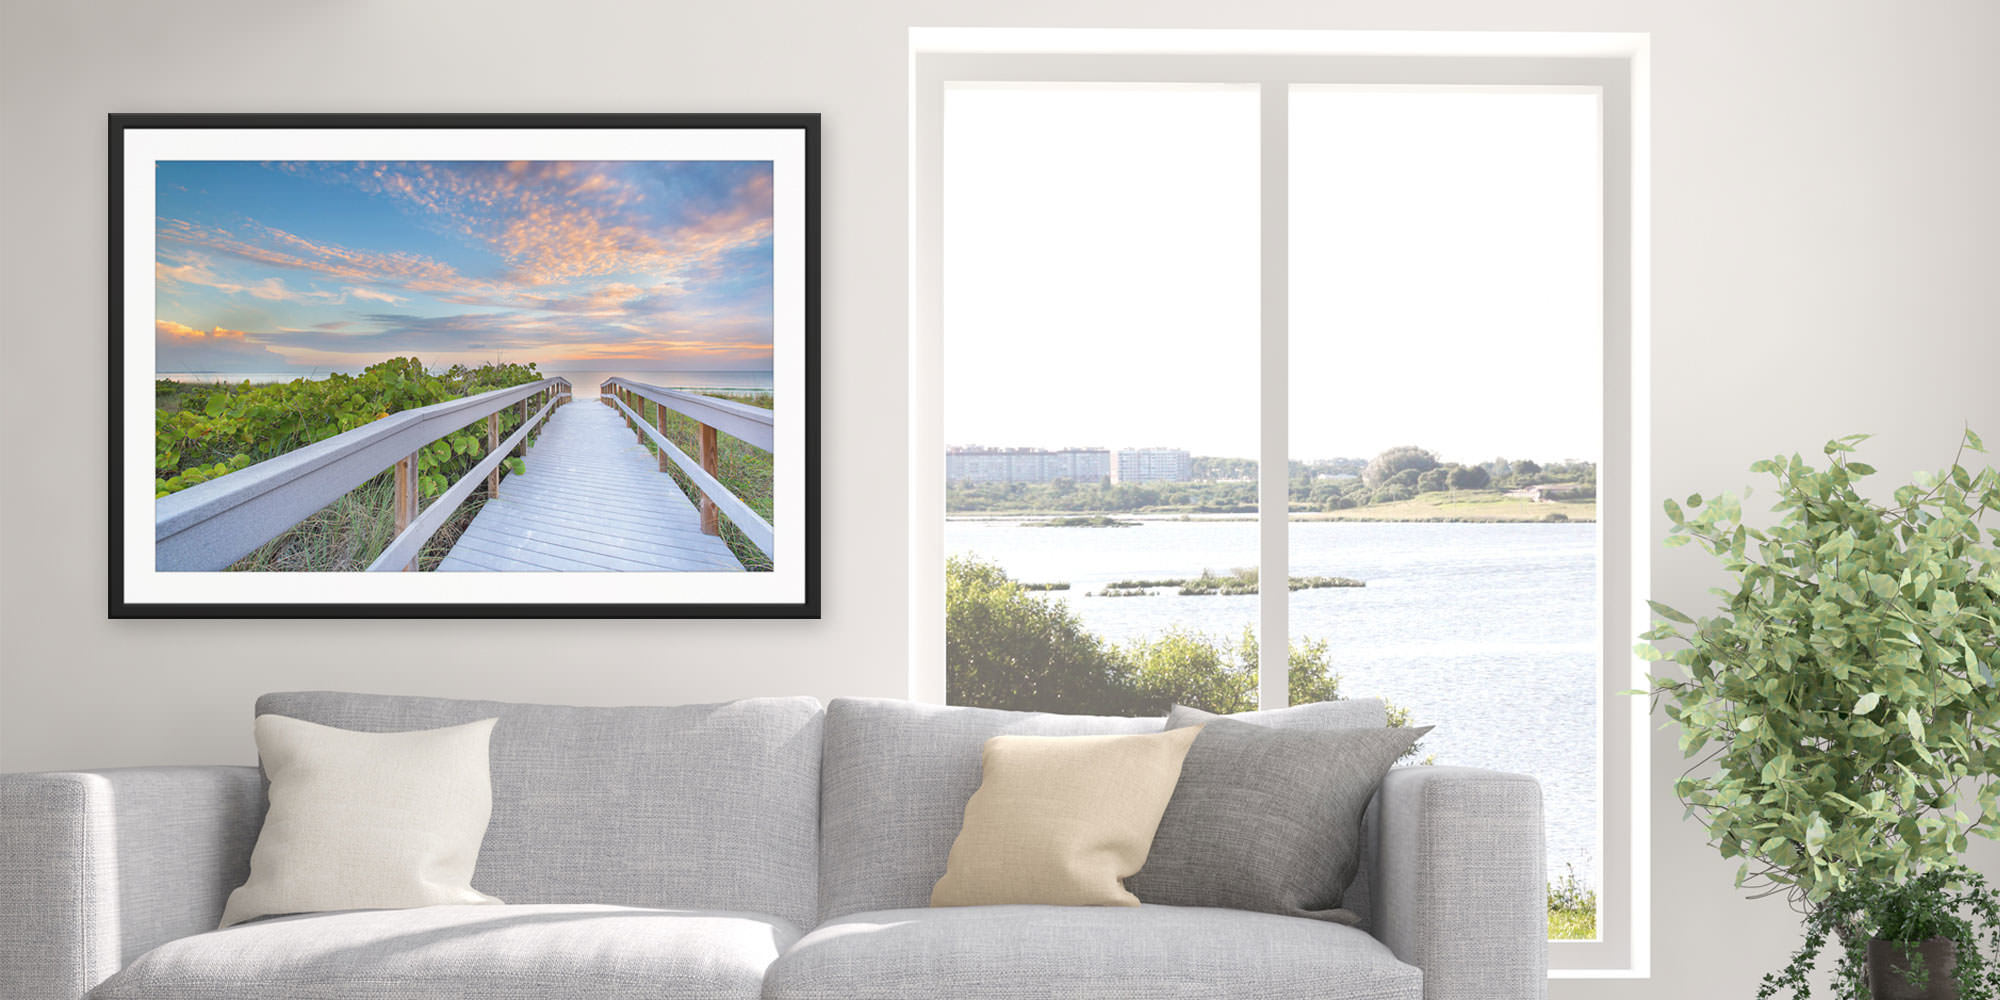 <div class='title'>           The Walk to Sunset Beach - Treasure Island, Florida by Andrew Vernon         </div>                 <div class='description'>           A framed and matted print of The Walk to Sunset Beach by Andrew Vernon hangs in a modern living room         </div>